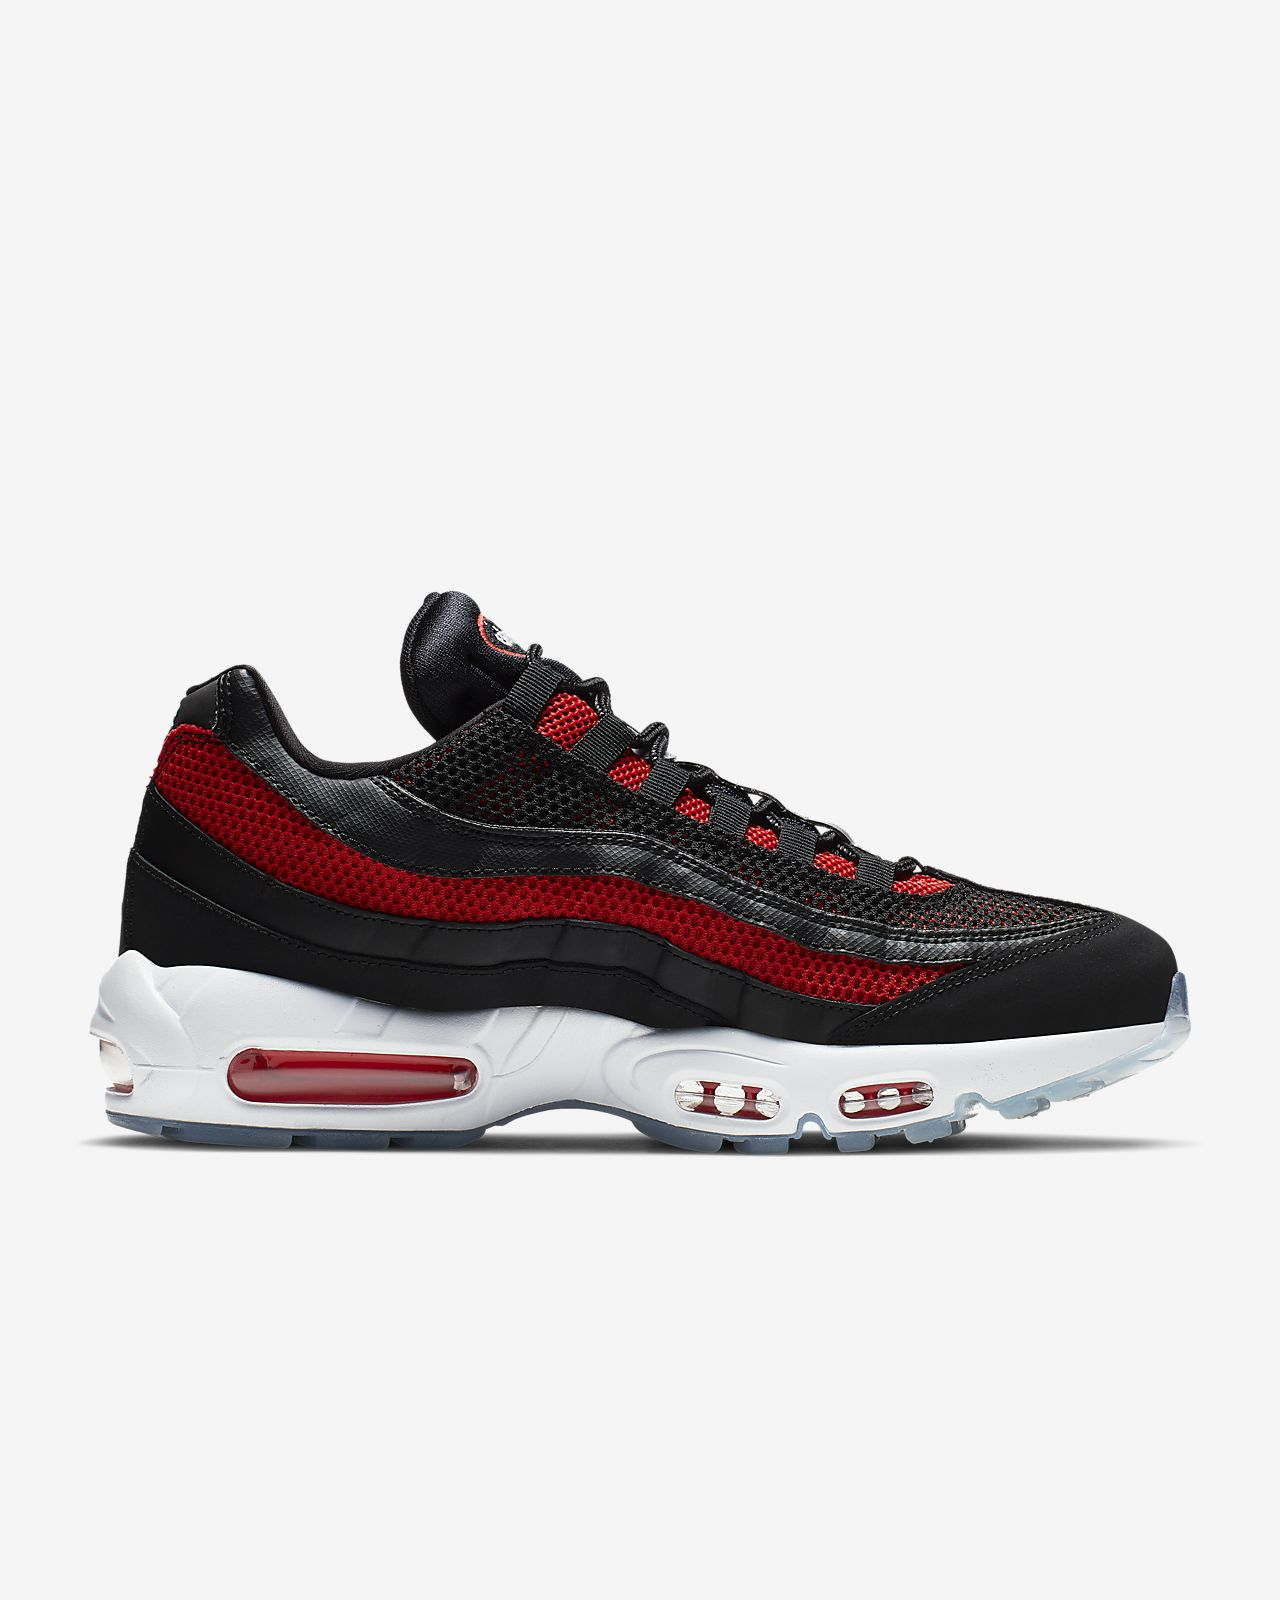 innovative design 0fc98 a1691 Men s Shoe. Nike Air Max 95 Essential